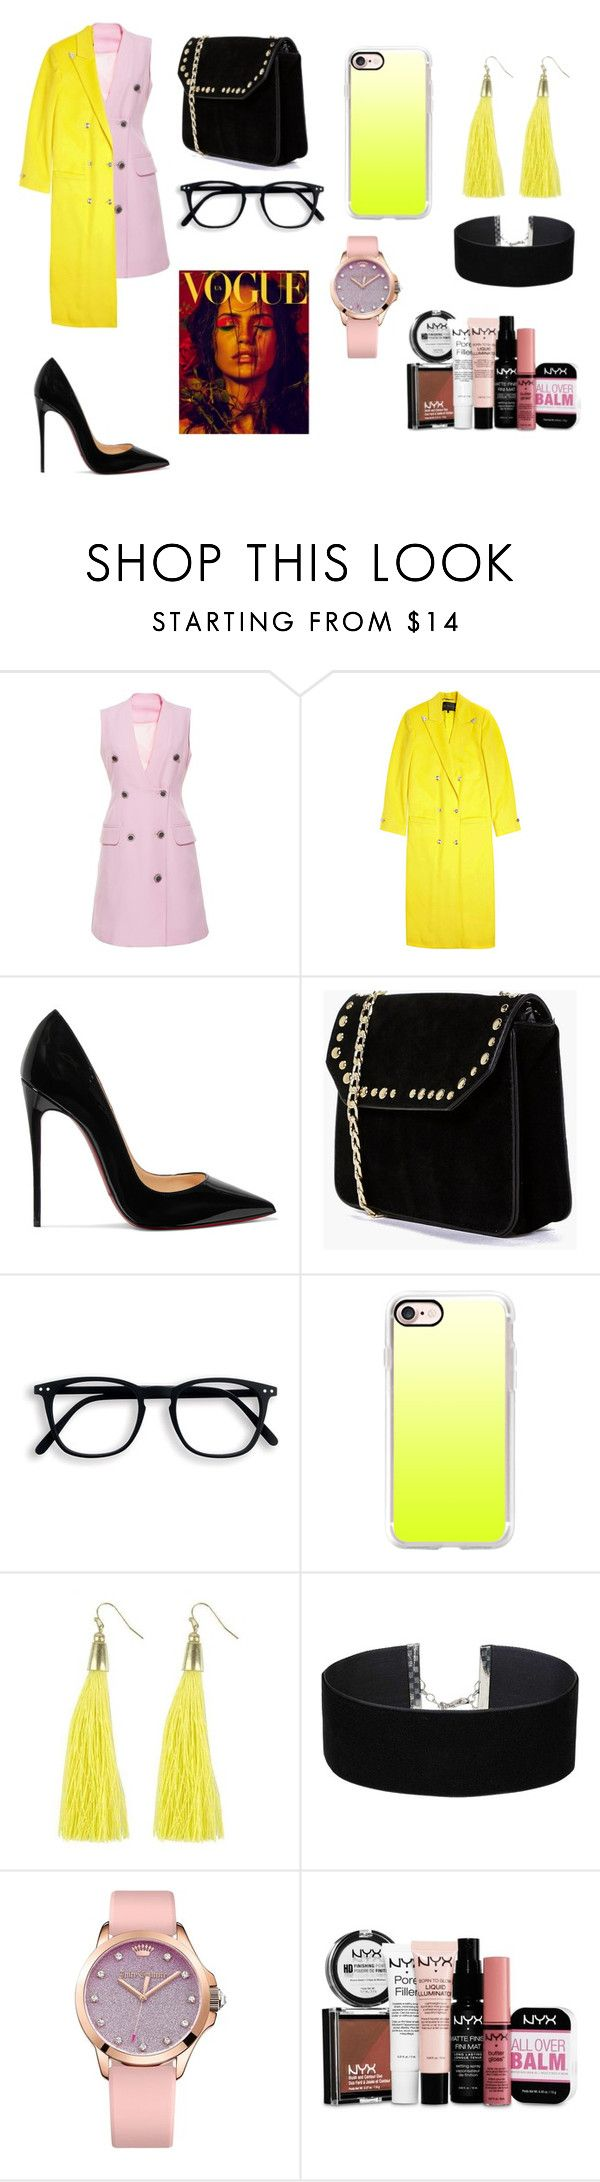 """свидание"" by reduska on Polyvore featuring мода, Versace, Christian Louboutin, Boohoo, Casetify, Moon and Lola, Miss Selfridge, Juicy Couture и NYX"